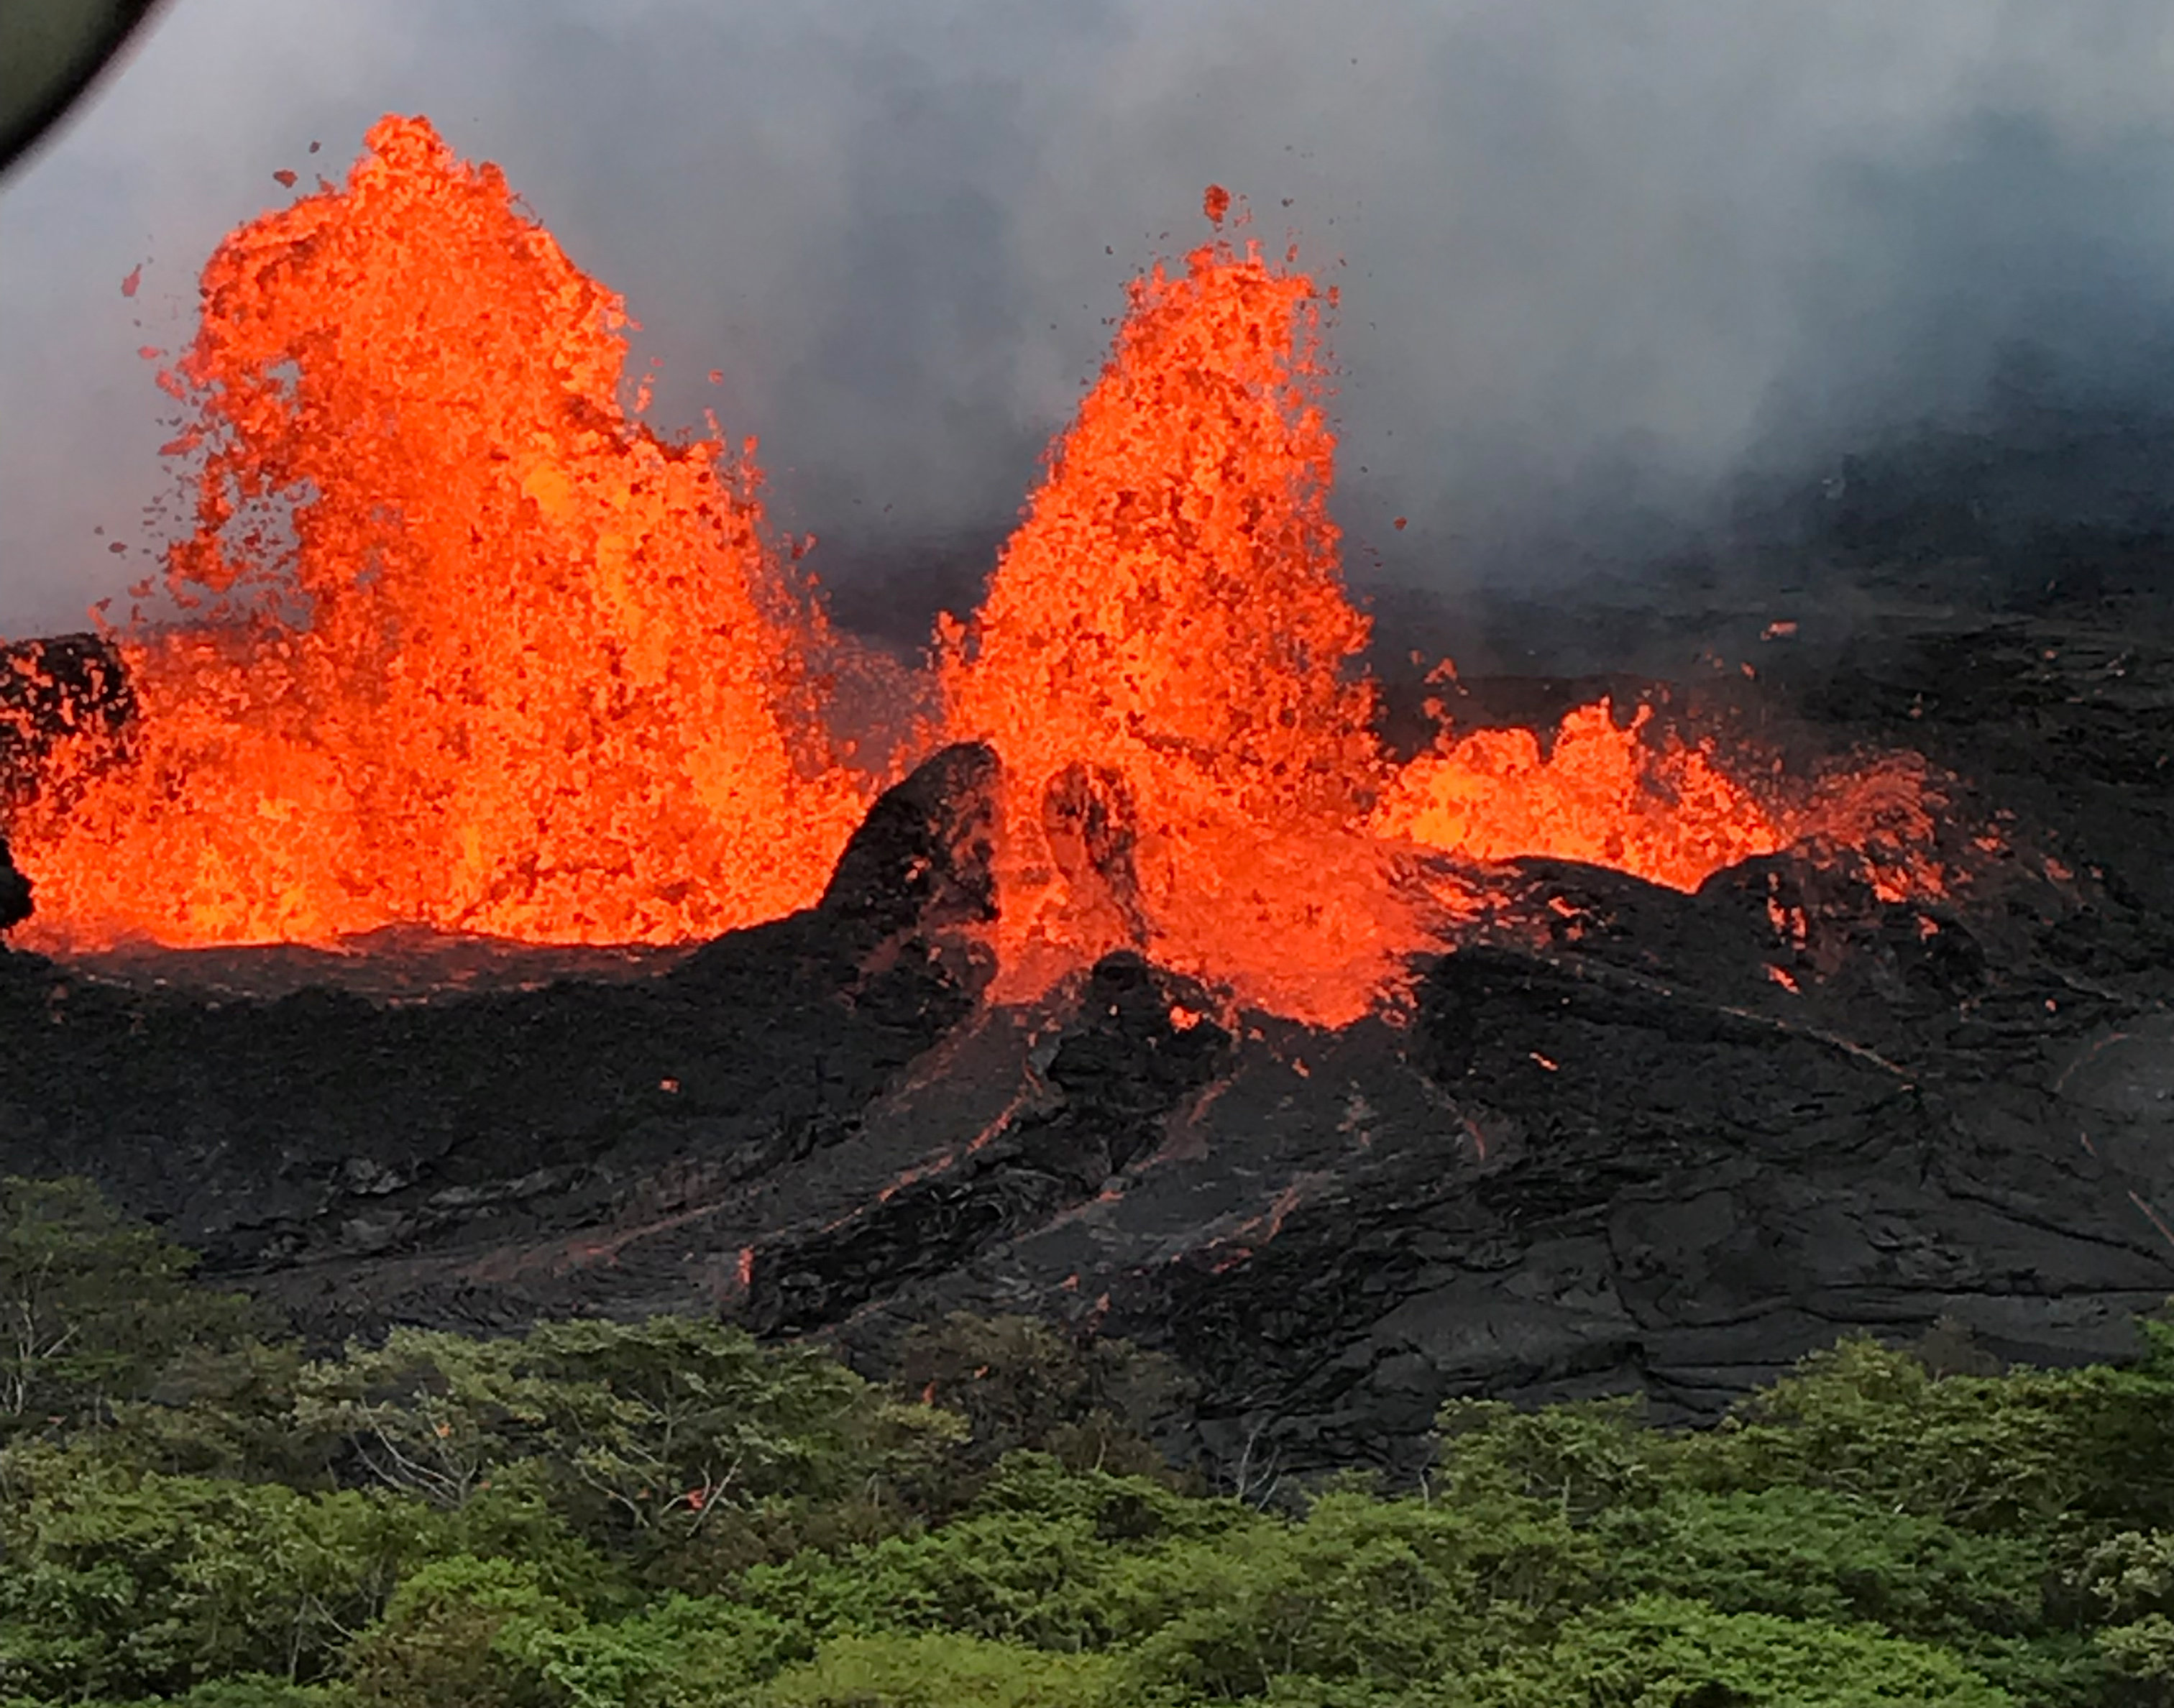 A lava fountain is observed from a helicopter flight over the Fissure 22 in Kilauea Volcano's Lower East Rift Zone during ongoing eruptions of the Kilauea Volcano in Hawaii, U.S. May 21, 2018. Picture taken on May 21, 2018. USGS/Handout via REUTERS